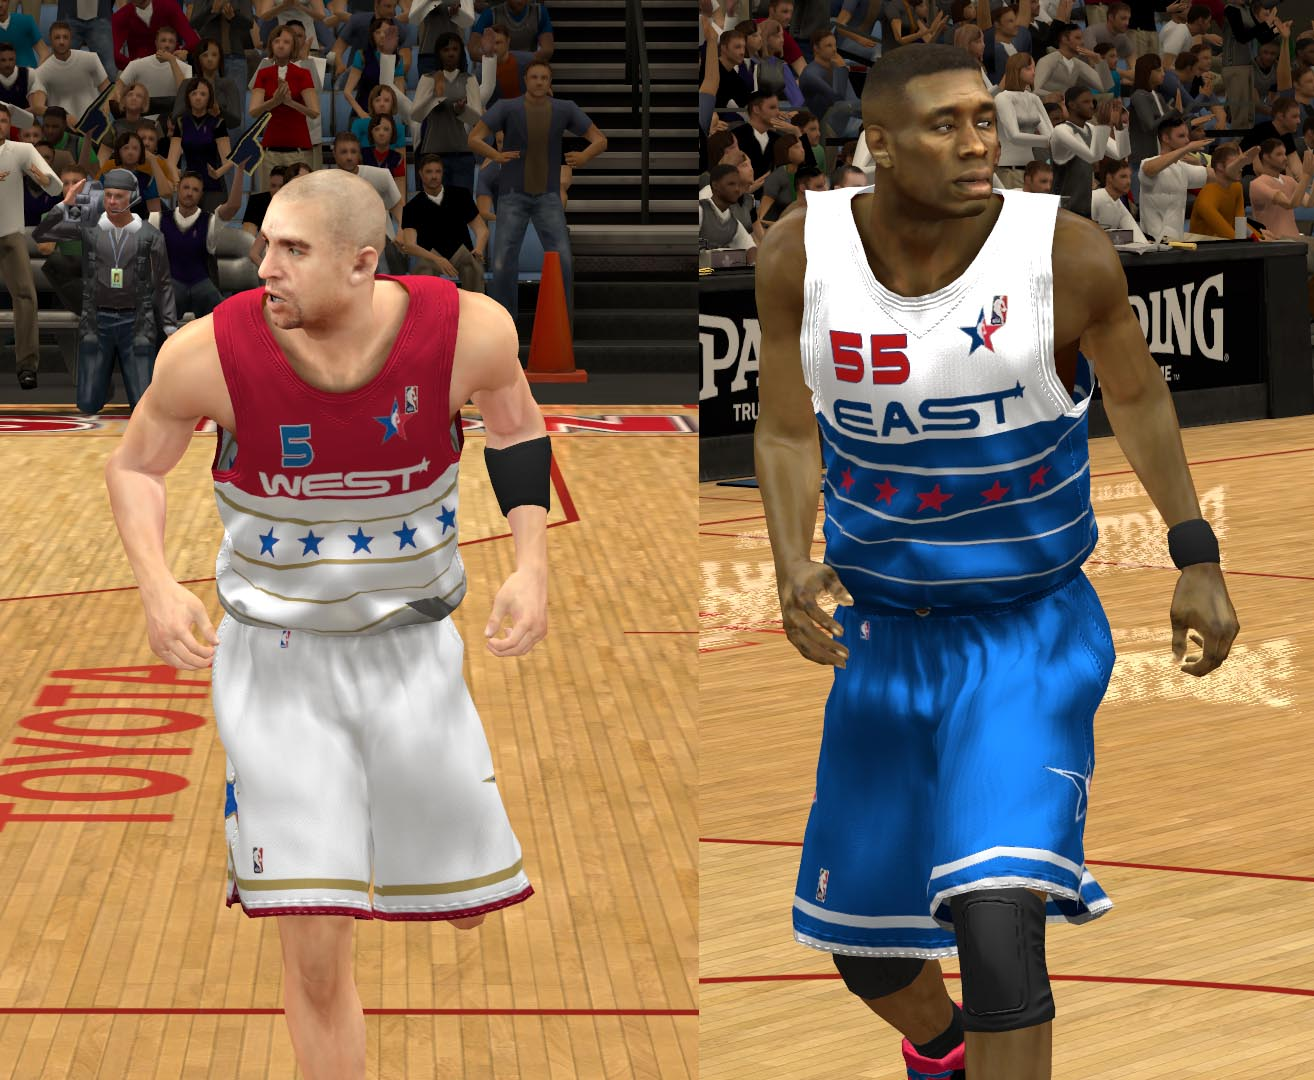 2006 All-Star Jerseys 2K13